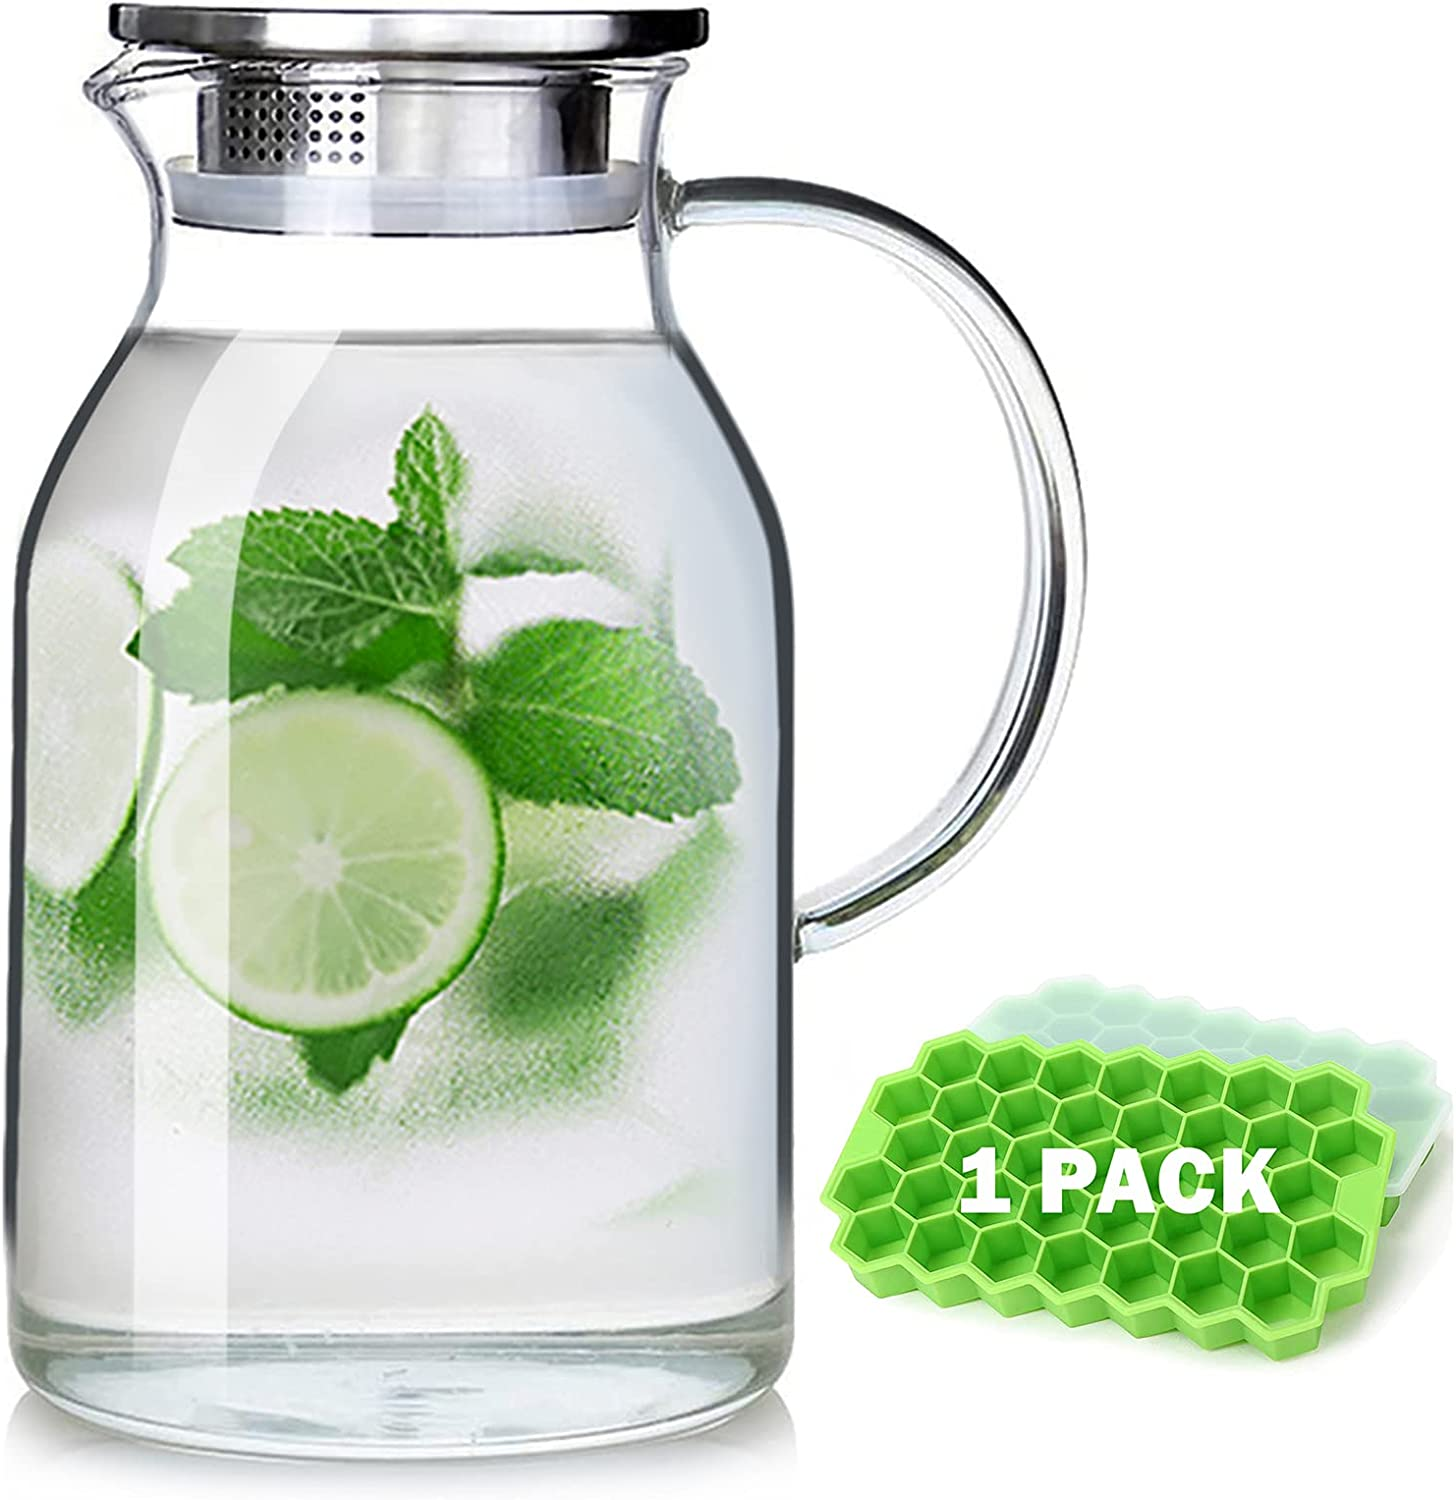 88OZ Glass Water pitcher with lid and Spout,High Heat Resistance Pitcher water jug for Hot/Cold Water & Iced Tea Wine Coffee Milk and Juice Beverage Carafe with Gift Ice Tray (2.6L)